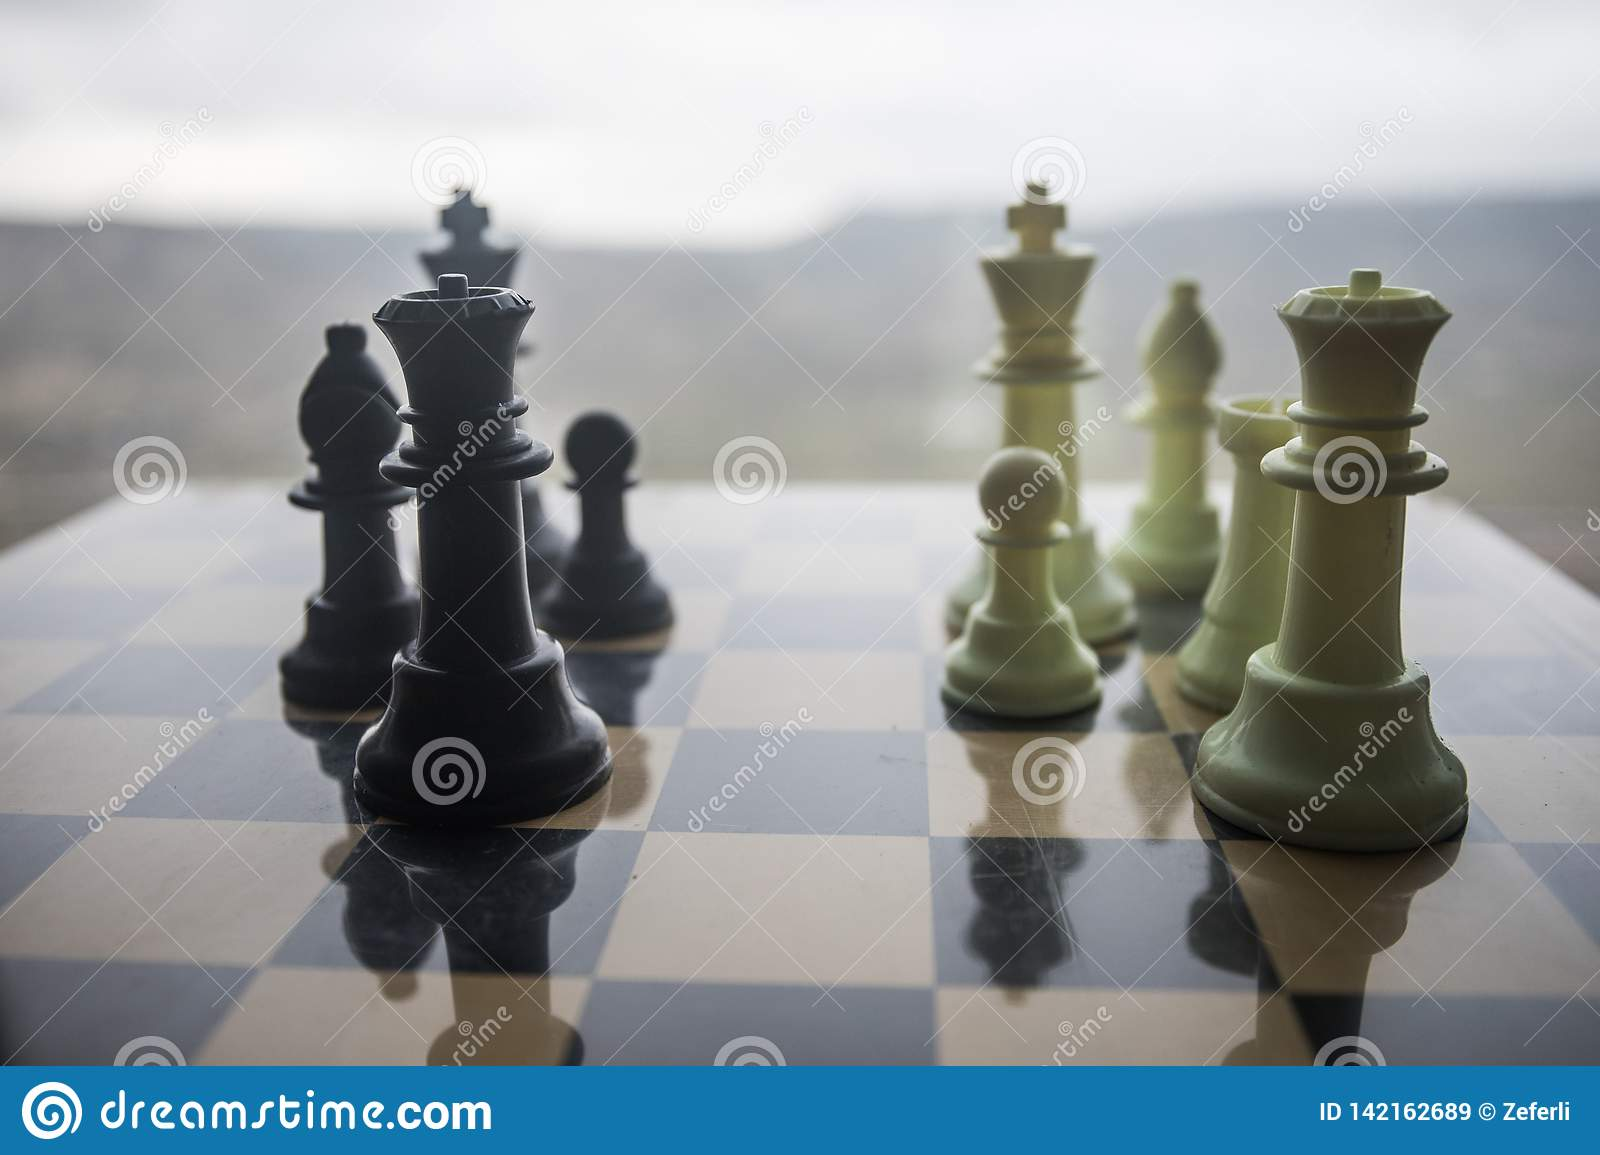 chess board game concept of business ideas and competition and strategy ideas. Chess figures on a chessboard outdoor sunset